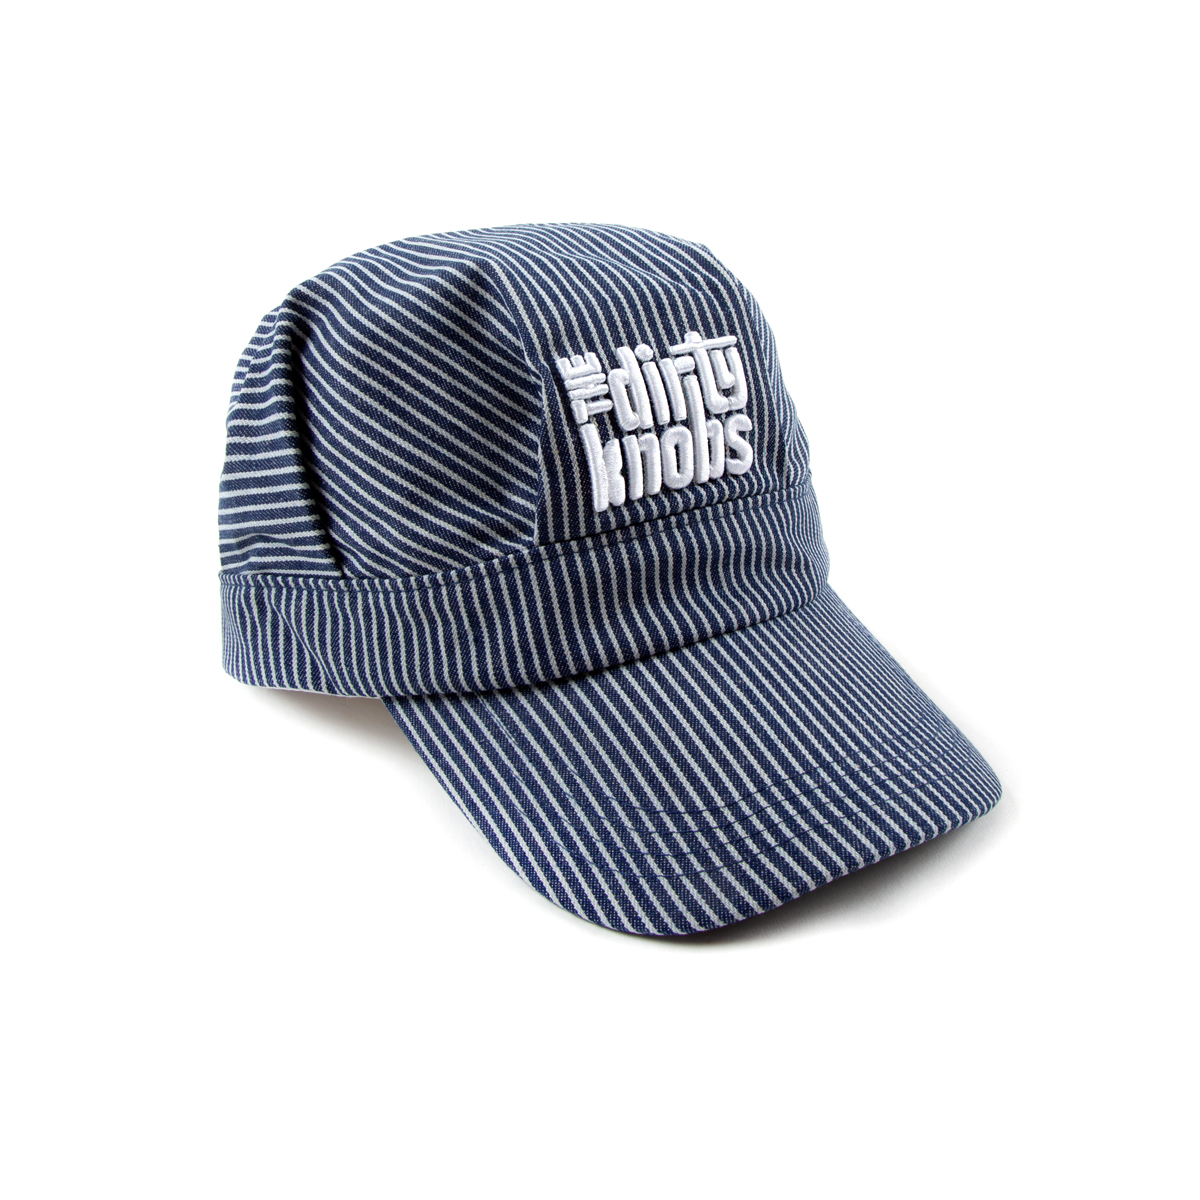 Limited Edition Dirty Knobs Conductor Hat